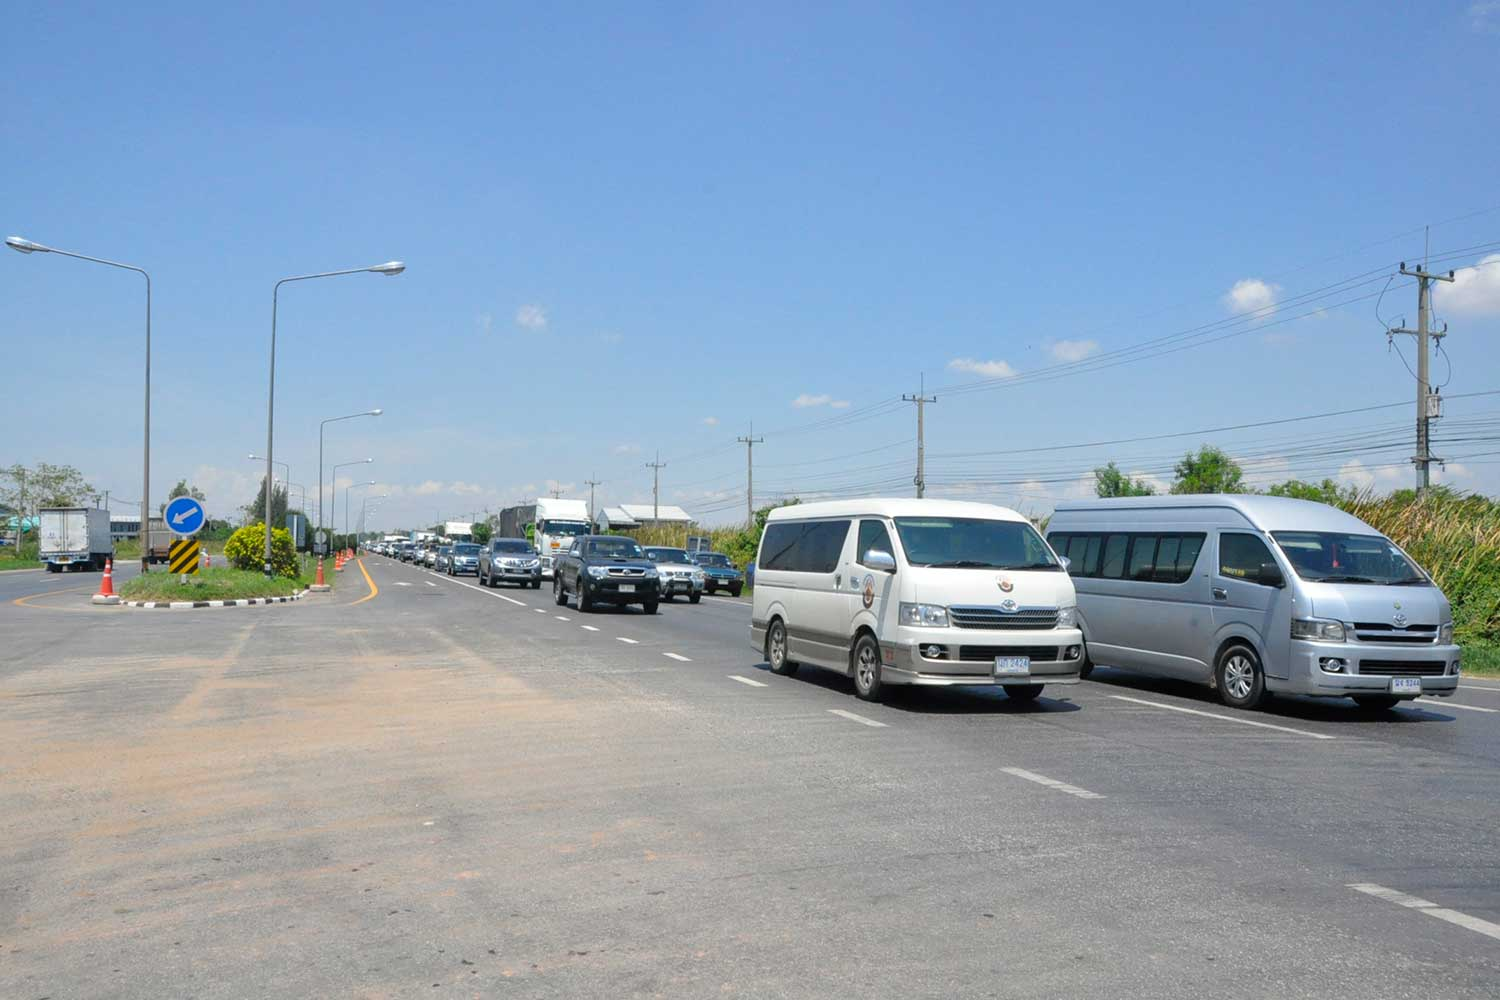 Mittraphap is one of the four roads planned for a 120km/hour speed limit project. (Post Today photo)